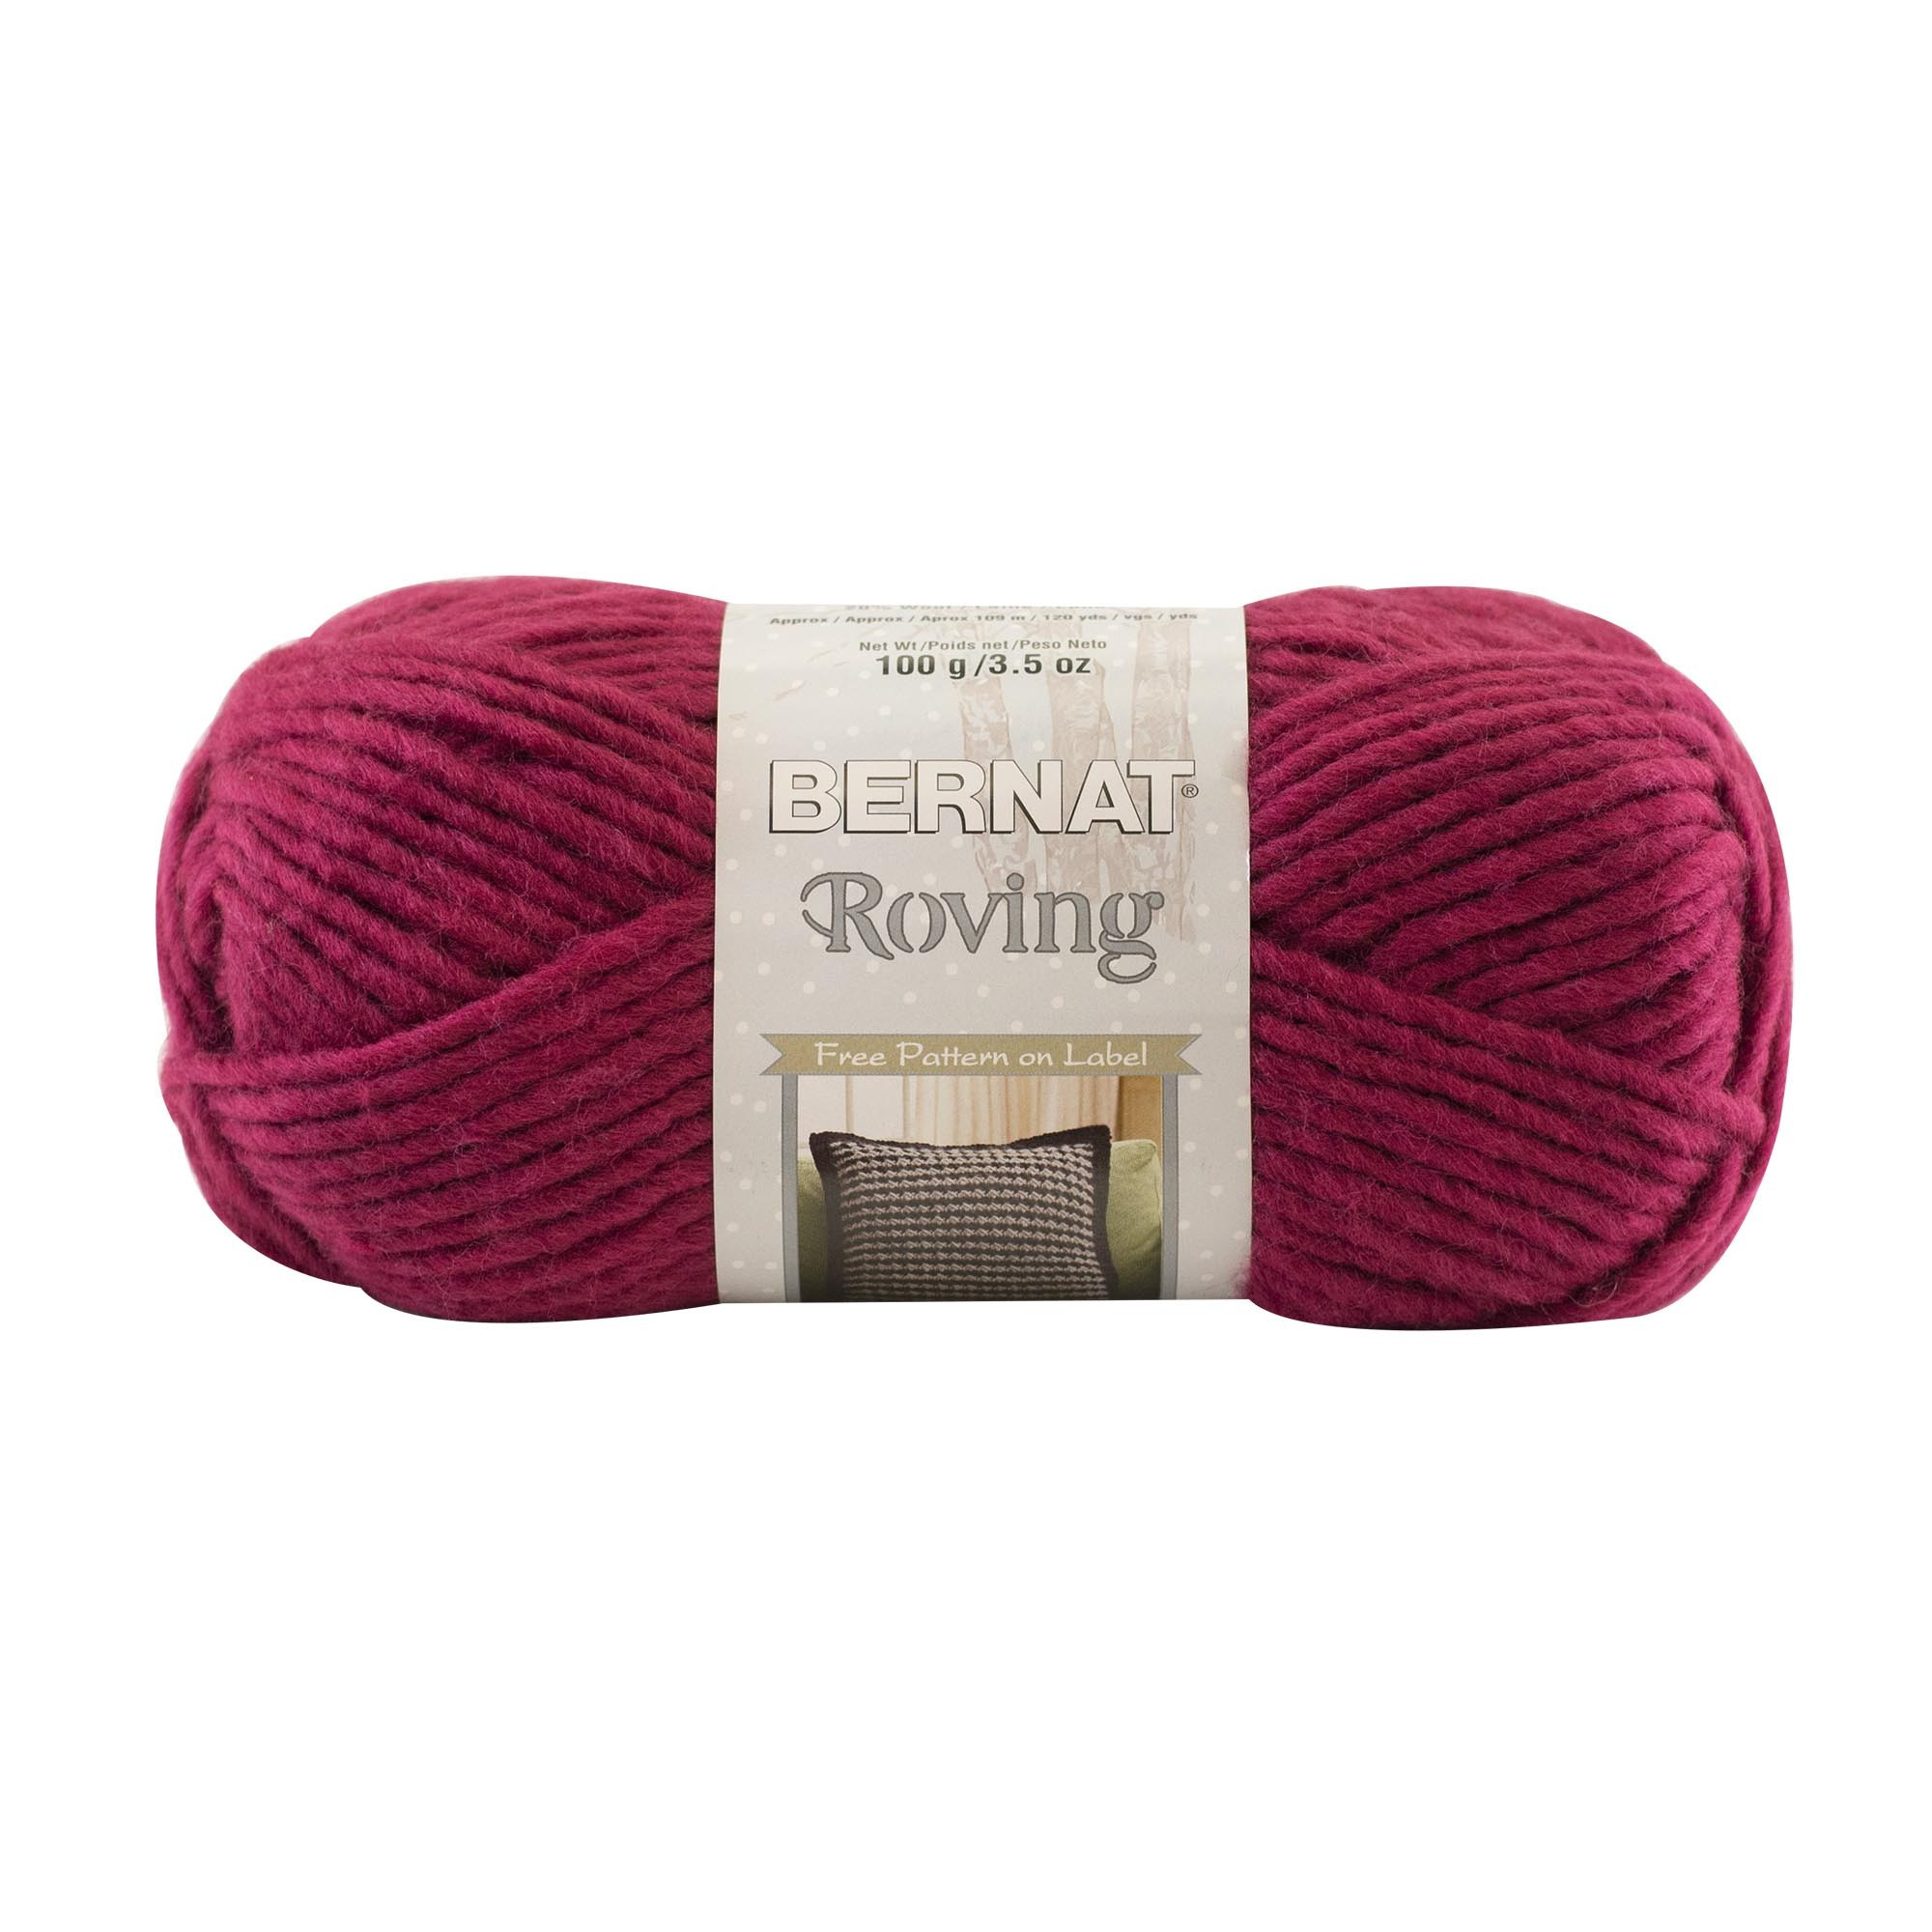 Fresh Bernat Roving Knitting Yarn 100g Bernat Roving Yarn Of Gorgeous 50 Models Bernat Roving Yarn